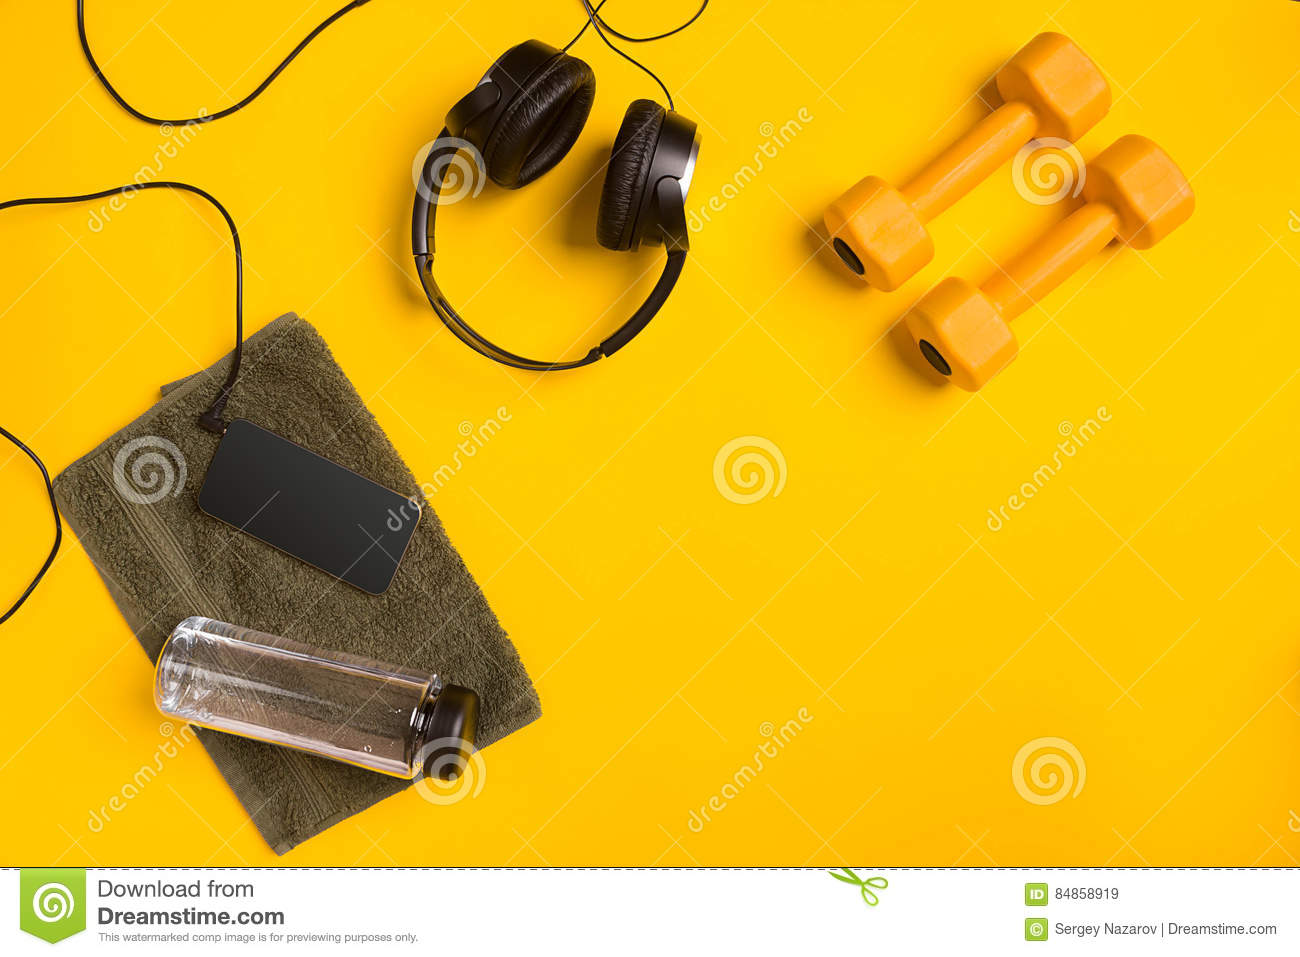 Fitness accessories on a yellow background. Dumbbells, bottle of water, towel and headphones.